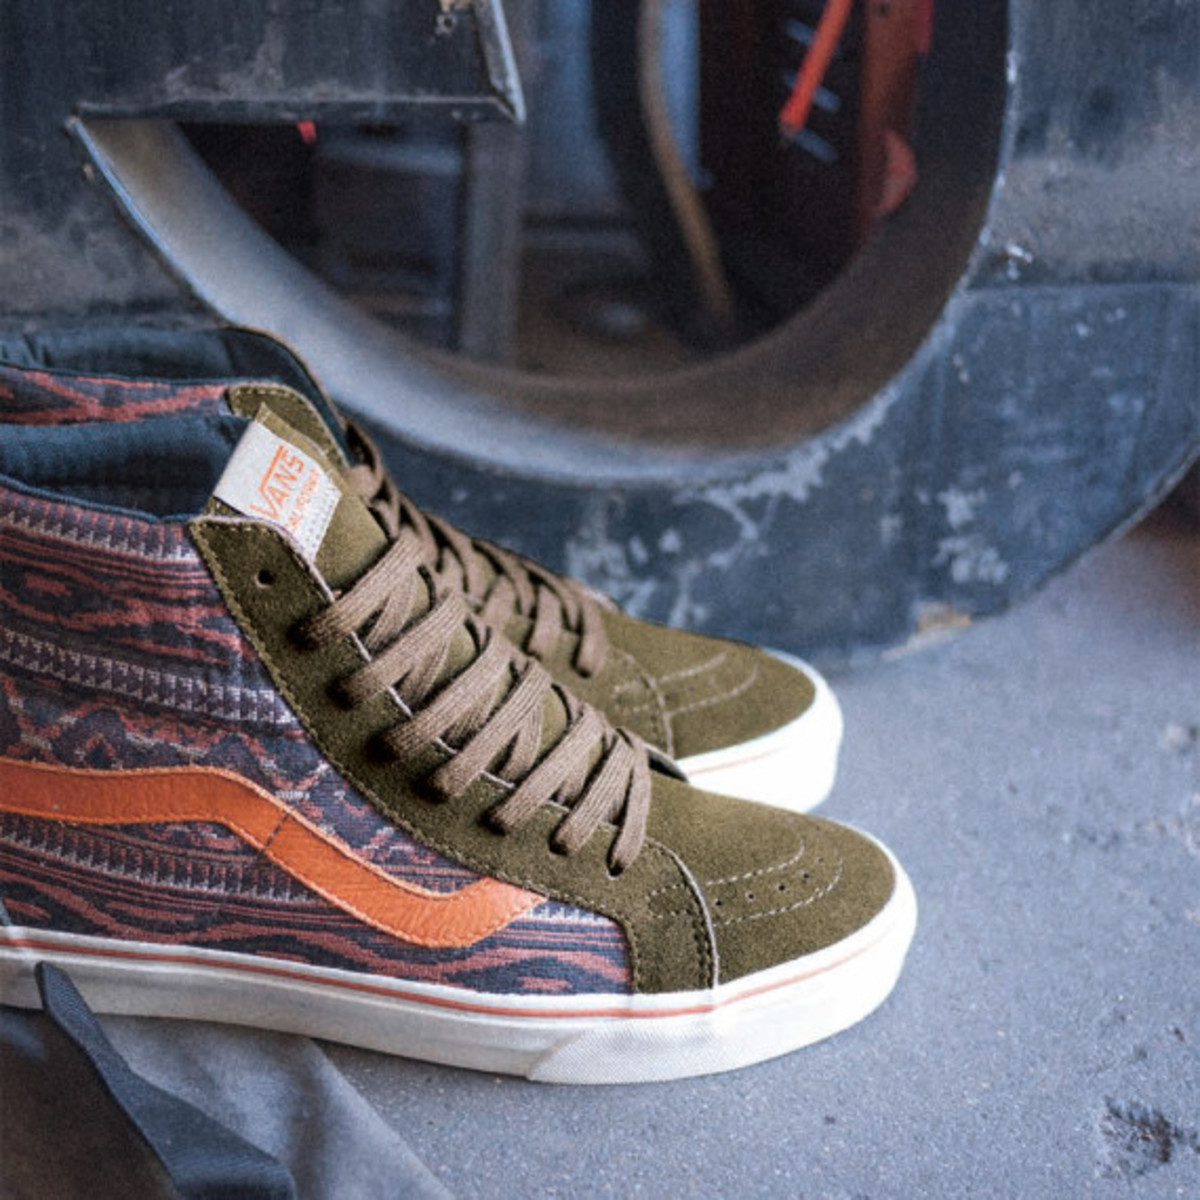 Vans-California-Collection_Sk8-Hi-Reissue_Inca_Holiday-2013